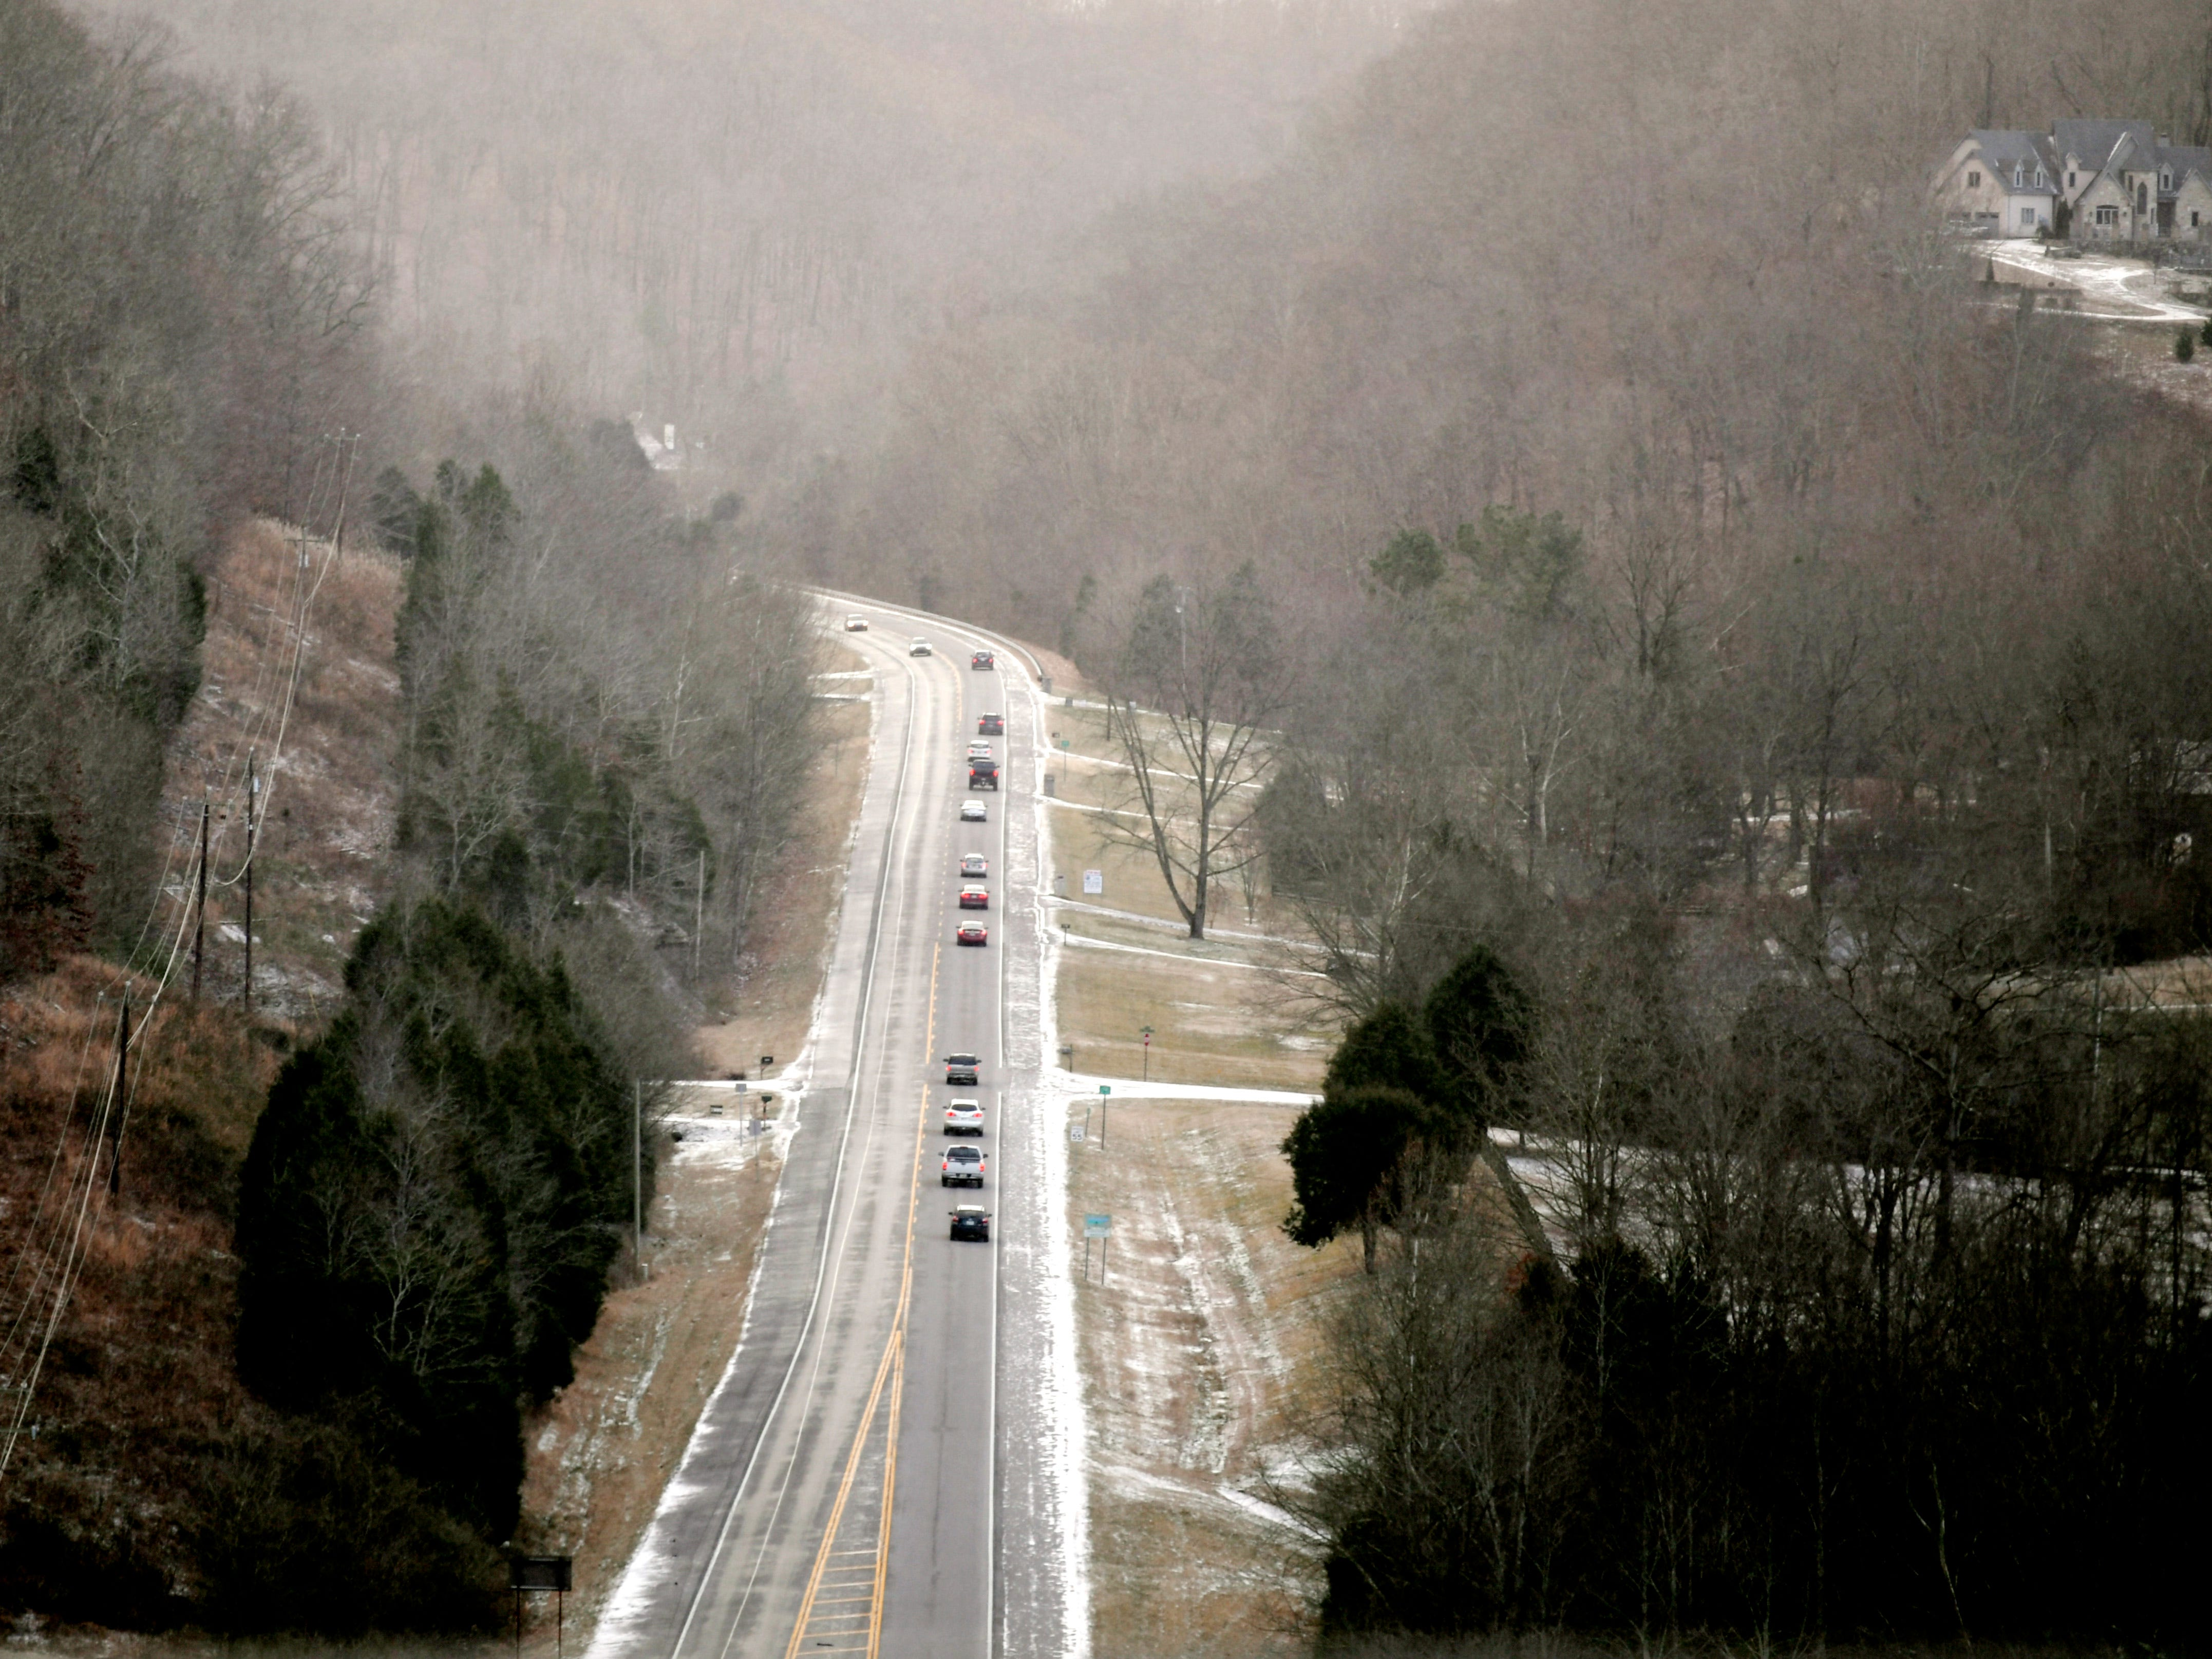 Cars travel on Highway 96 West near Natchez Trace Parkway after a dusting of snow hit Middle Tennessee Wednesday, Jan. 30, 2018.